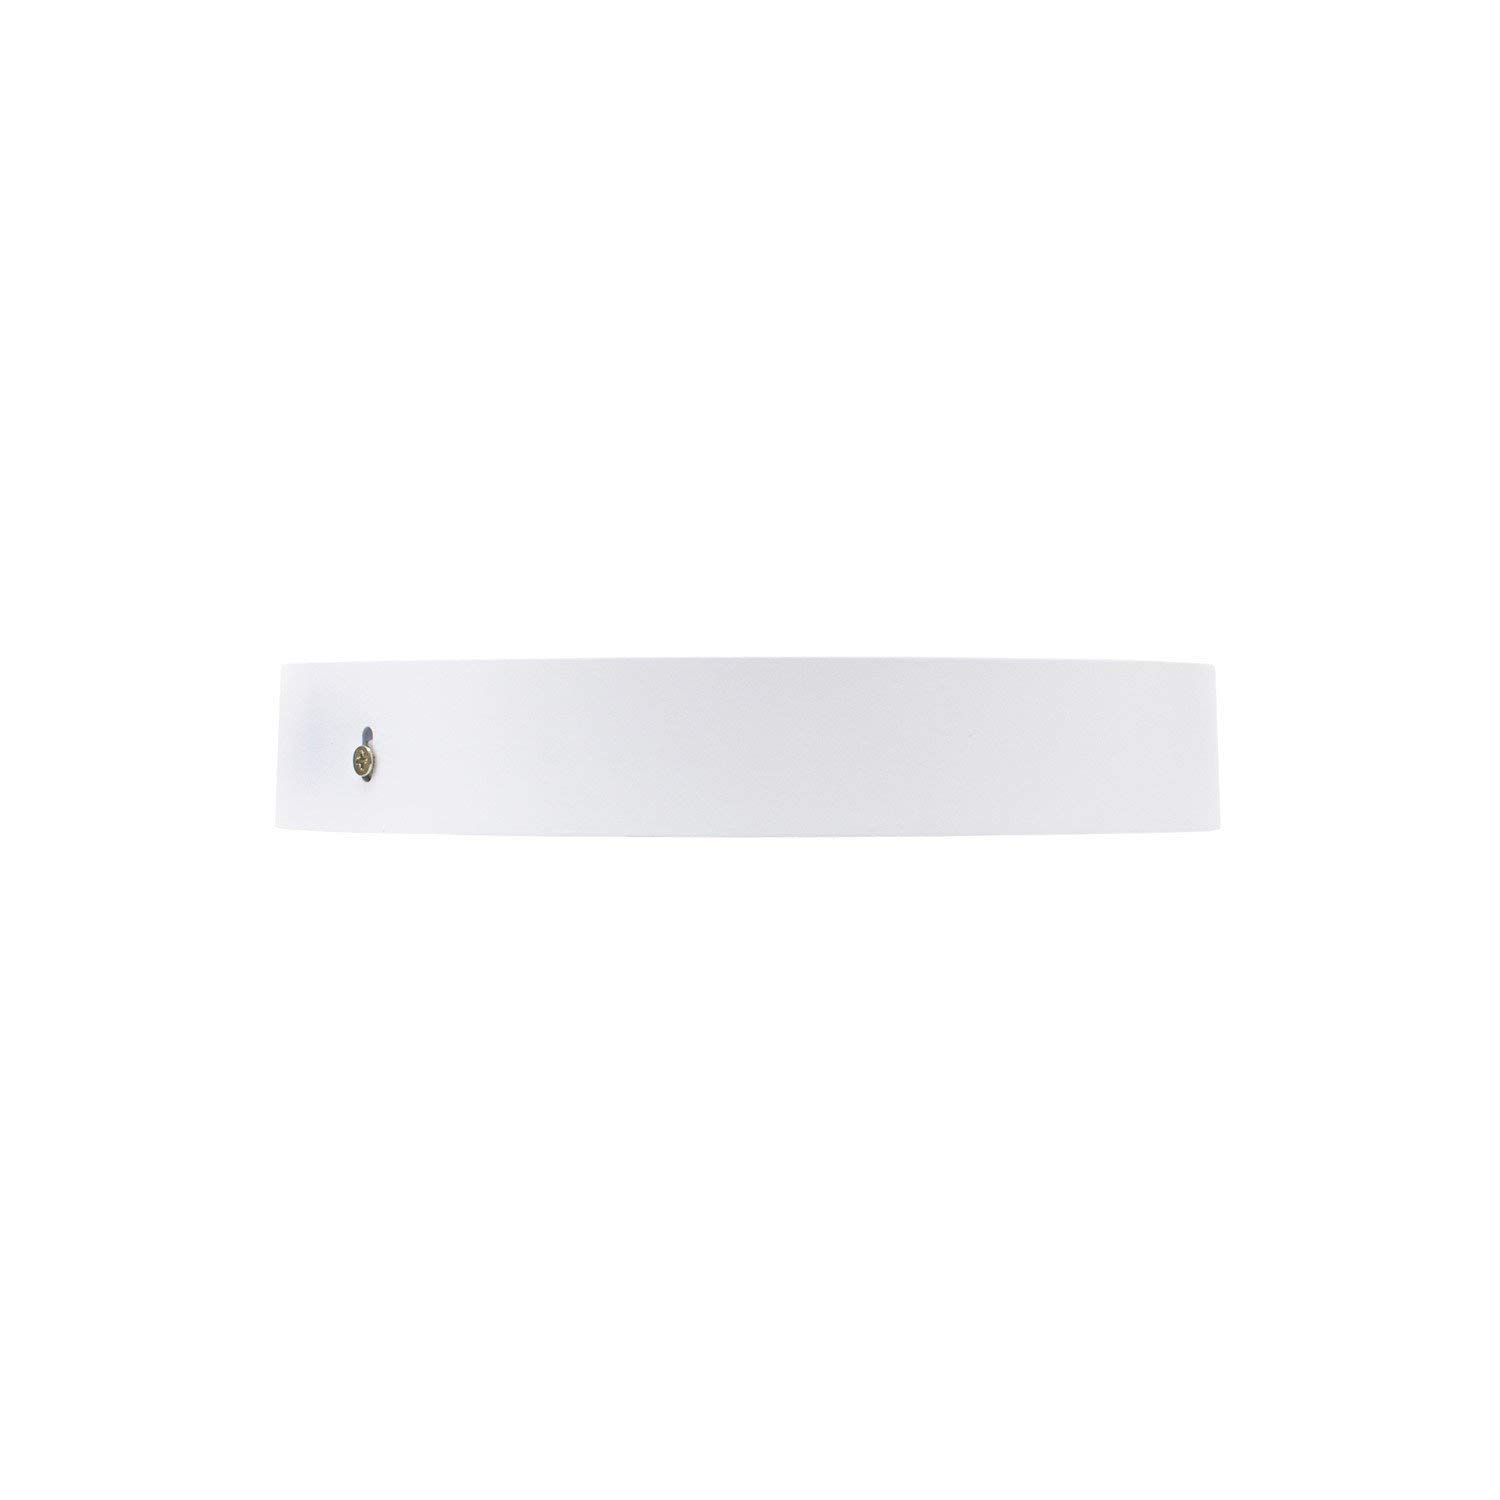 LEDKIA LIGHTING Pack Plafones LED Circular 12W (2 un) Blanco Frío 6000K - 6500K: Amazon.es: Iluminación